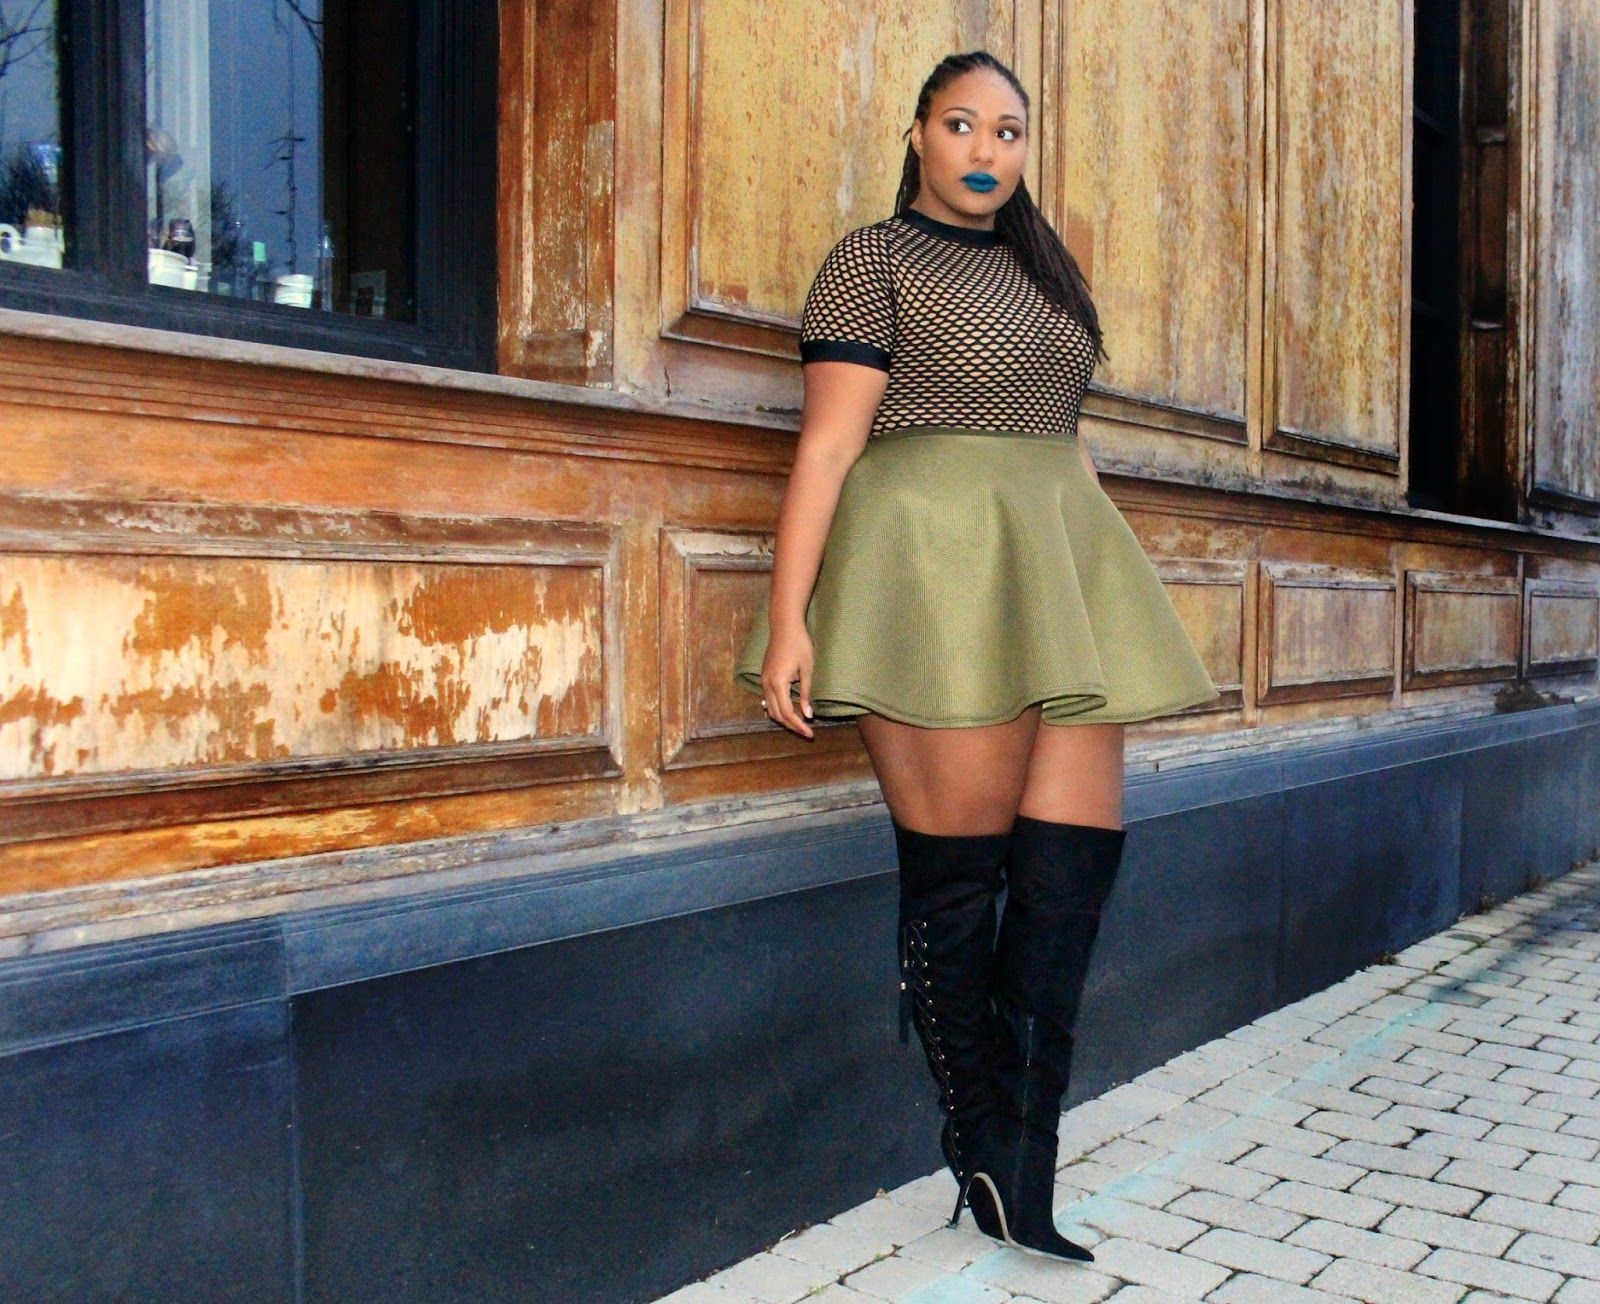 e0ff23e02 A Thick Girl's Closet: Thigh High Boots for NYE | Curvalicious ...